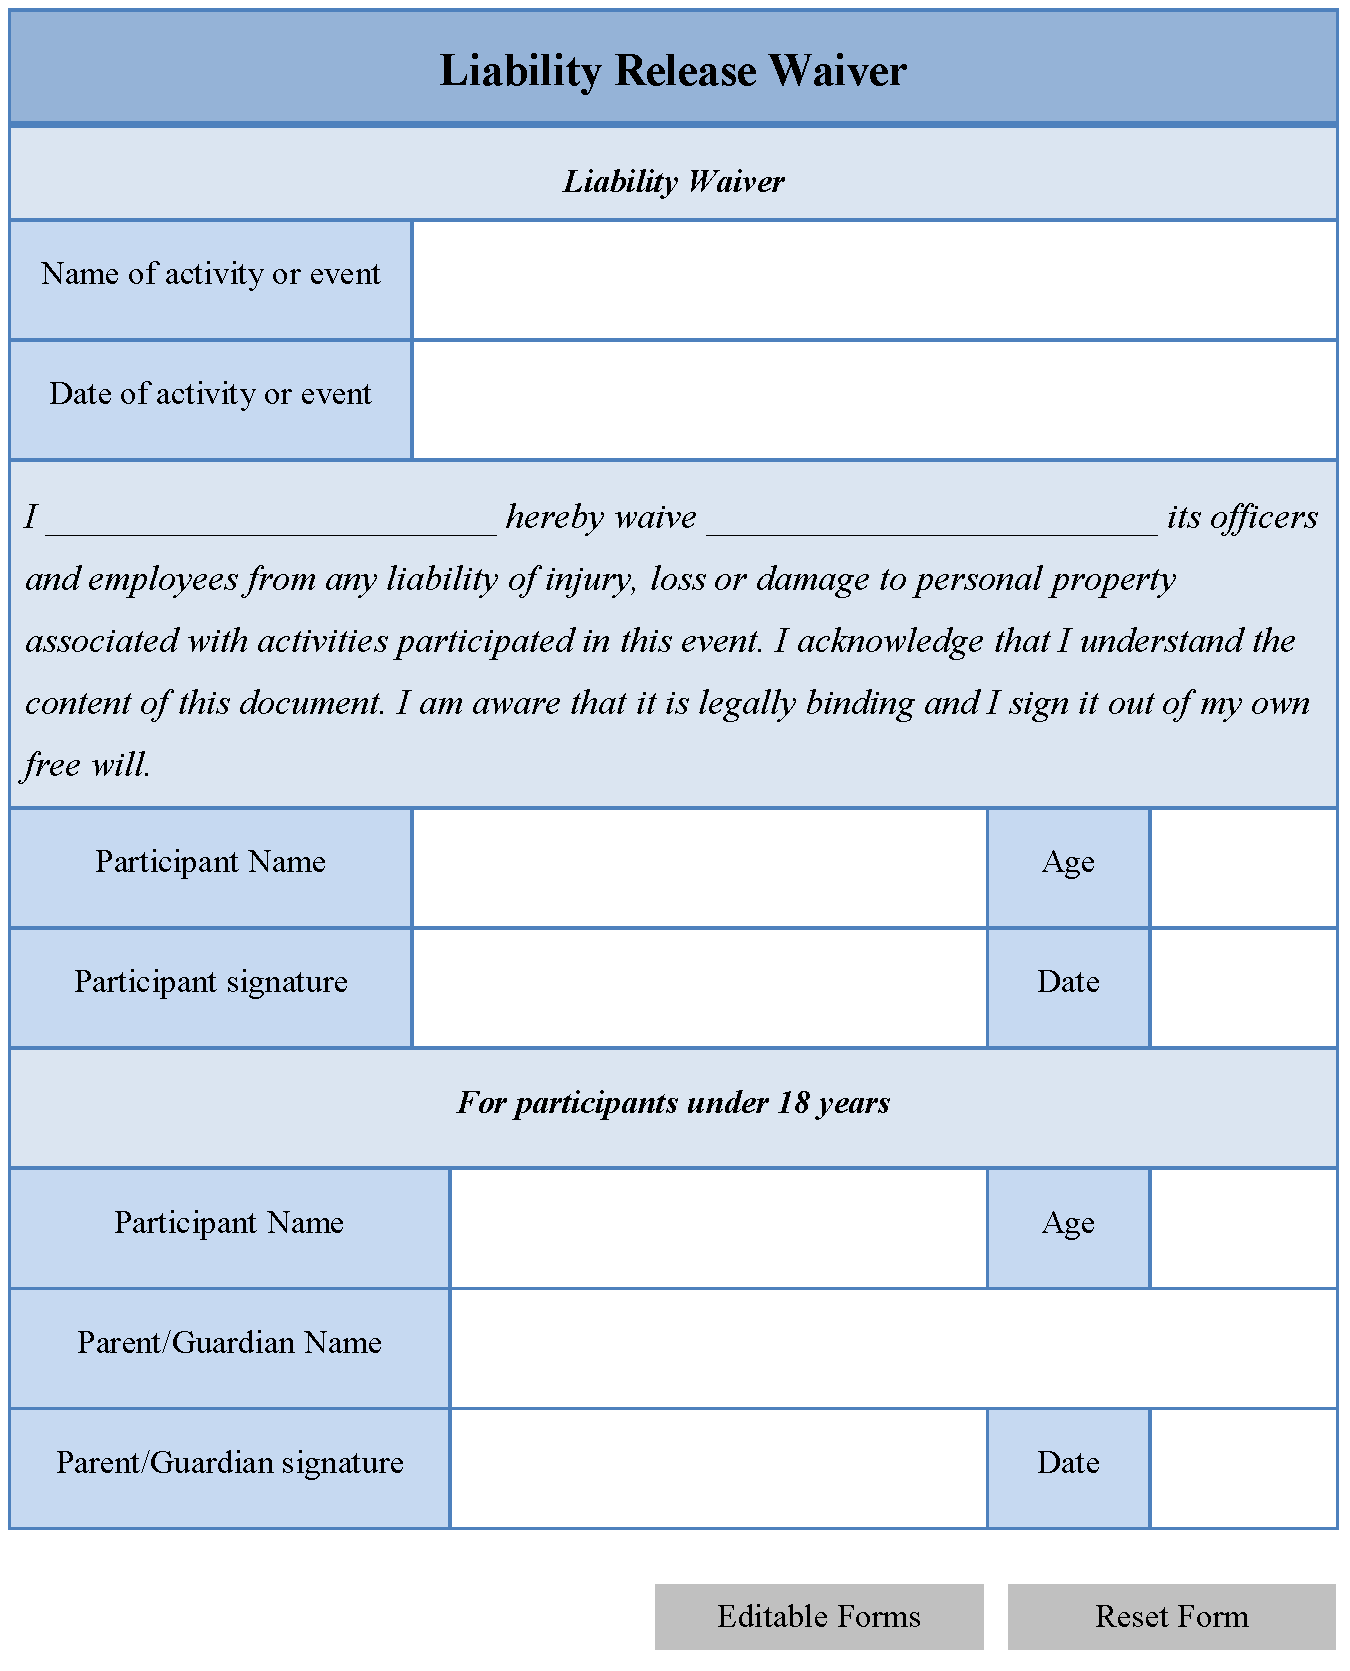 General Release Of Liability Form Template Best Liability Waiver Form  Editable Forms